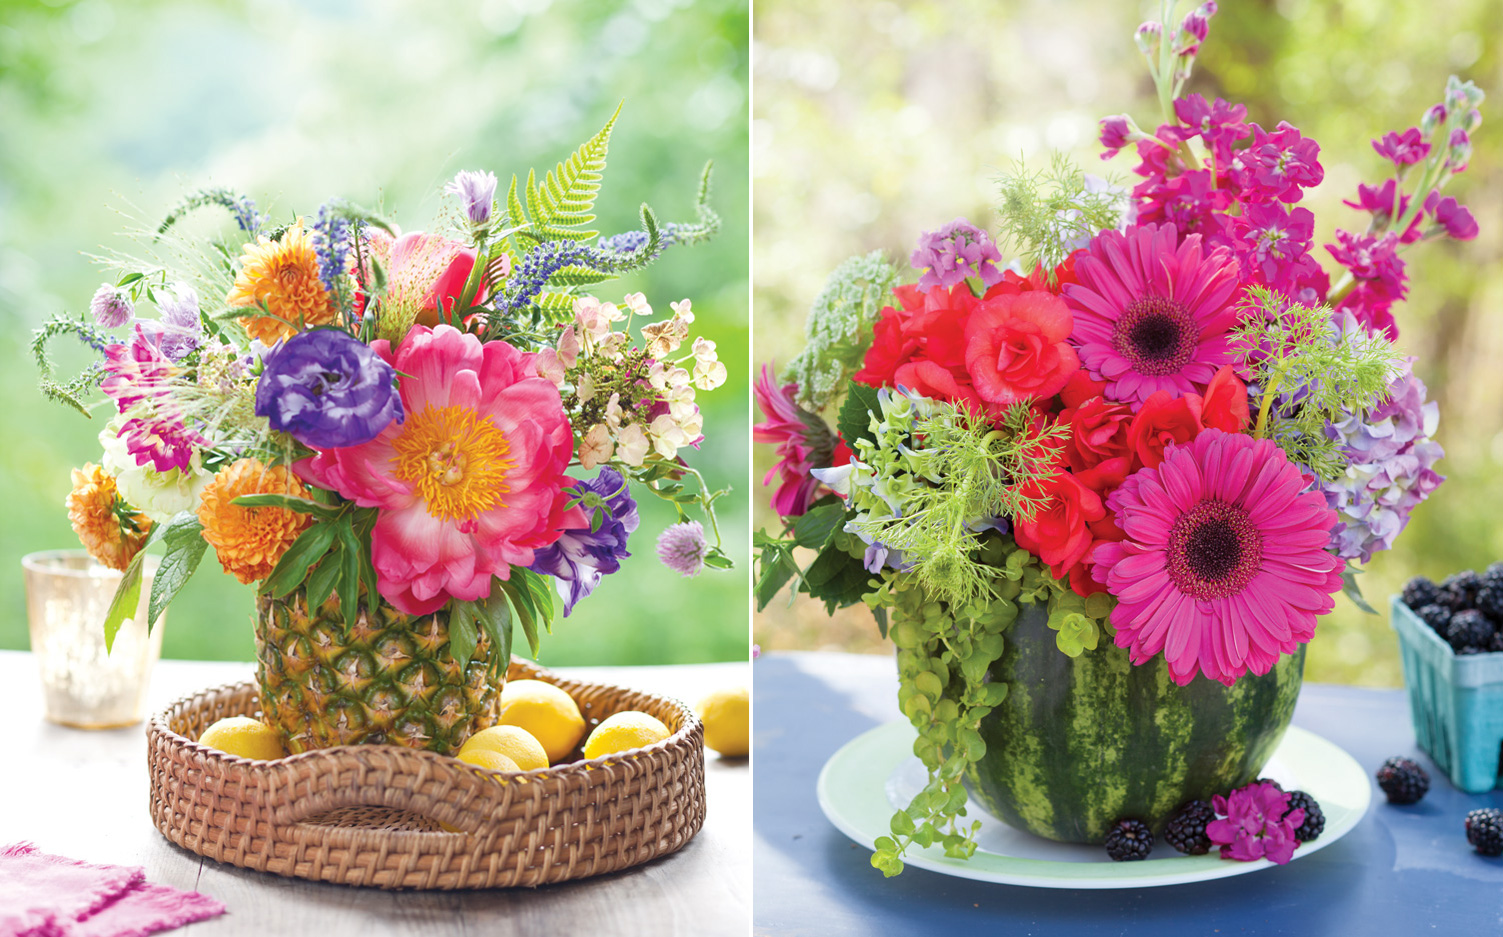 & Create Summer Floral Arrangements in Fruit - Southern Lady Mag